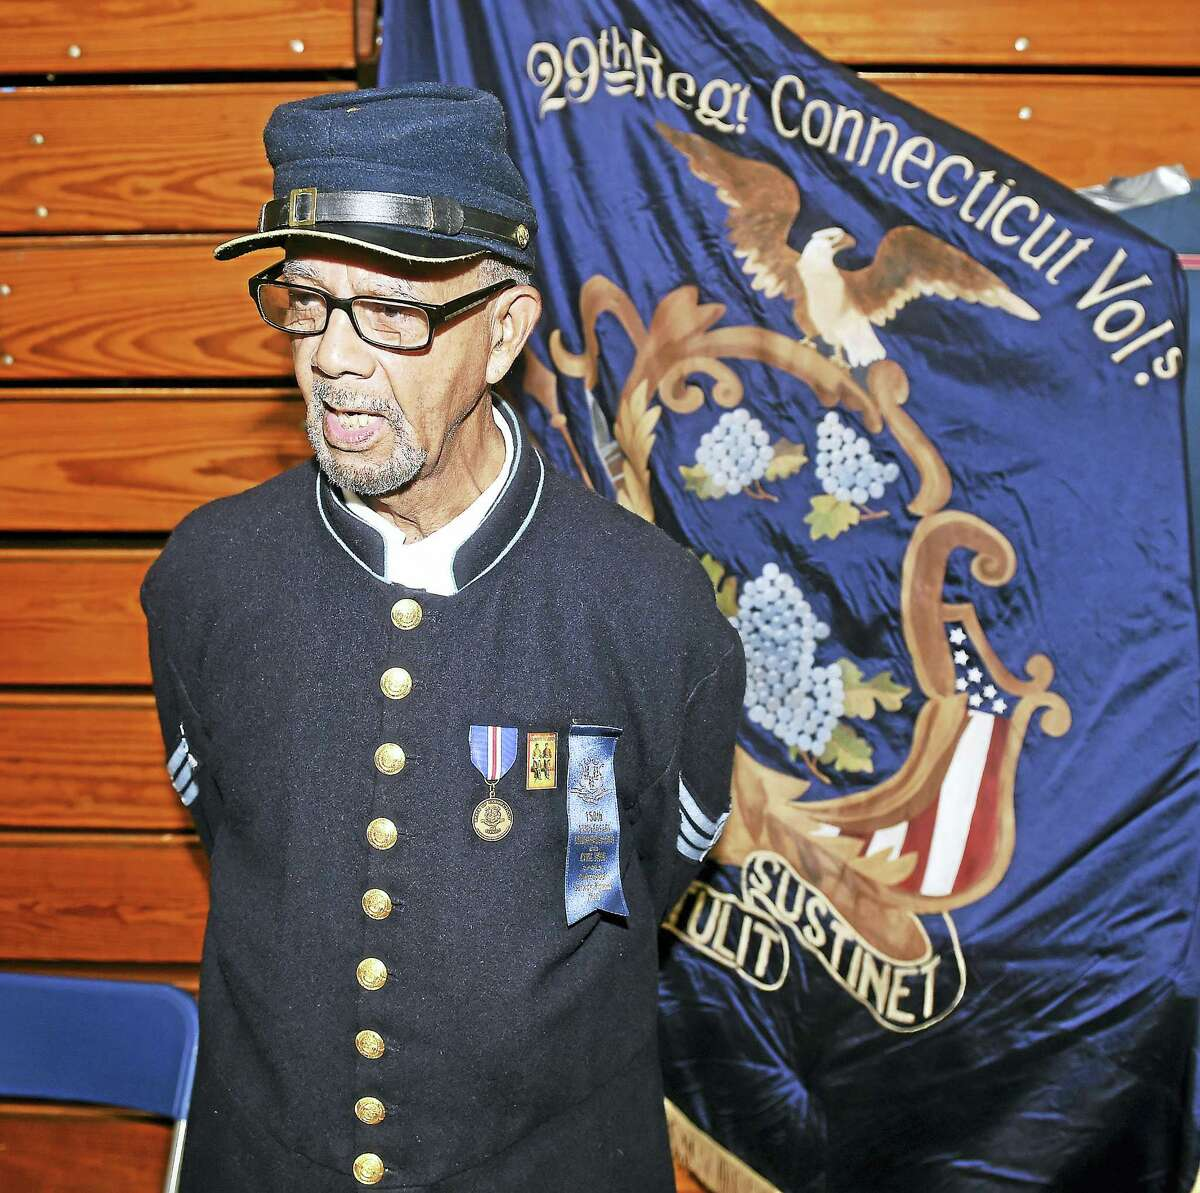 Dressed in a Civil War uniform, Raymond Sims, Sr., talks about the 29th Colored Connecticut Volunteers Infantry during the Hamden Veterans Awareness Day at Quinnipiac University in Hamden Friday.